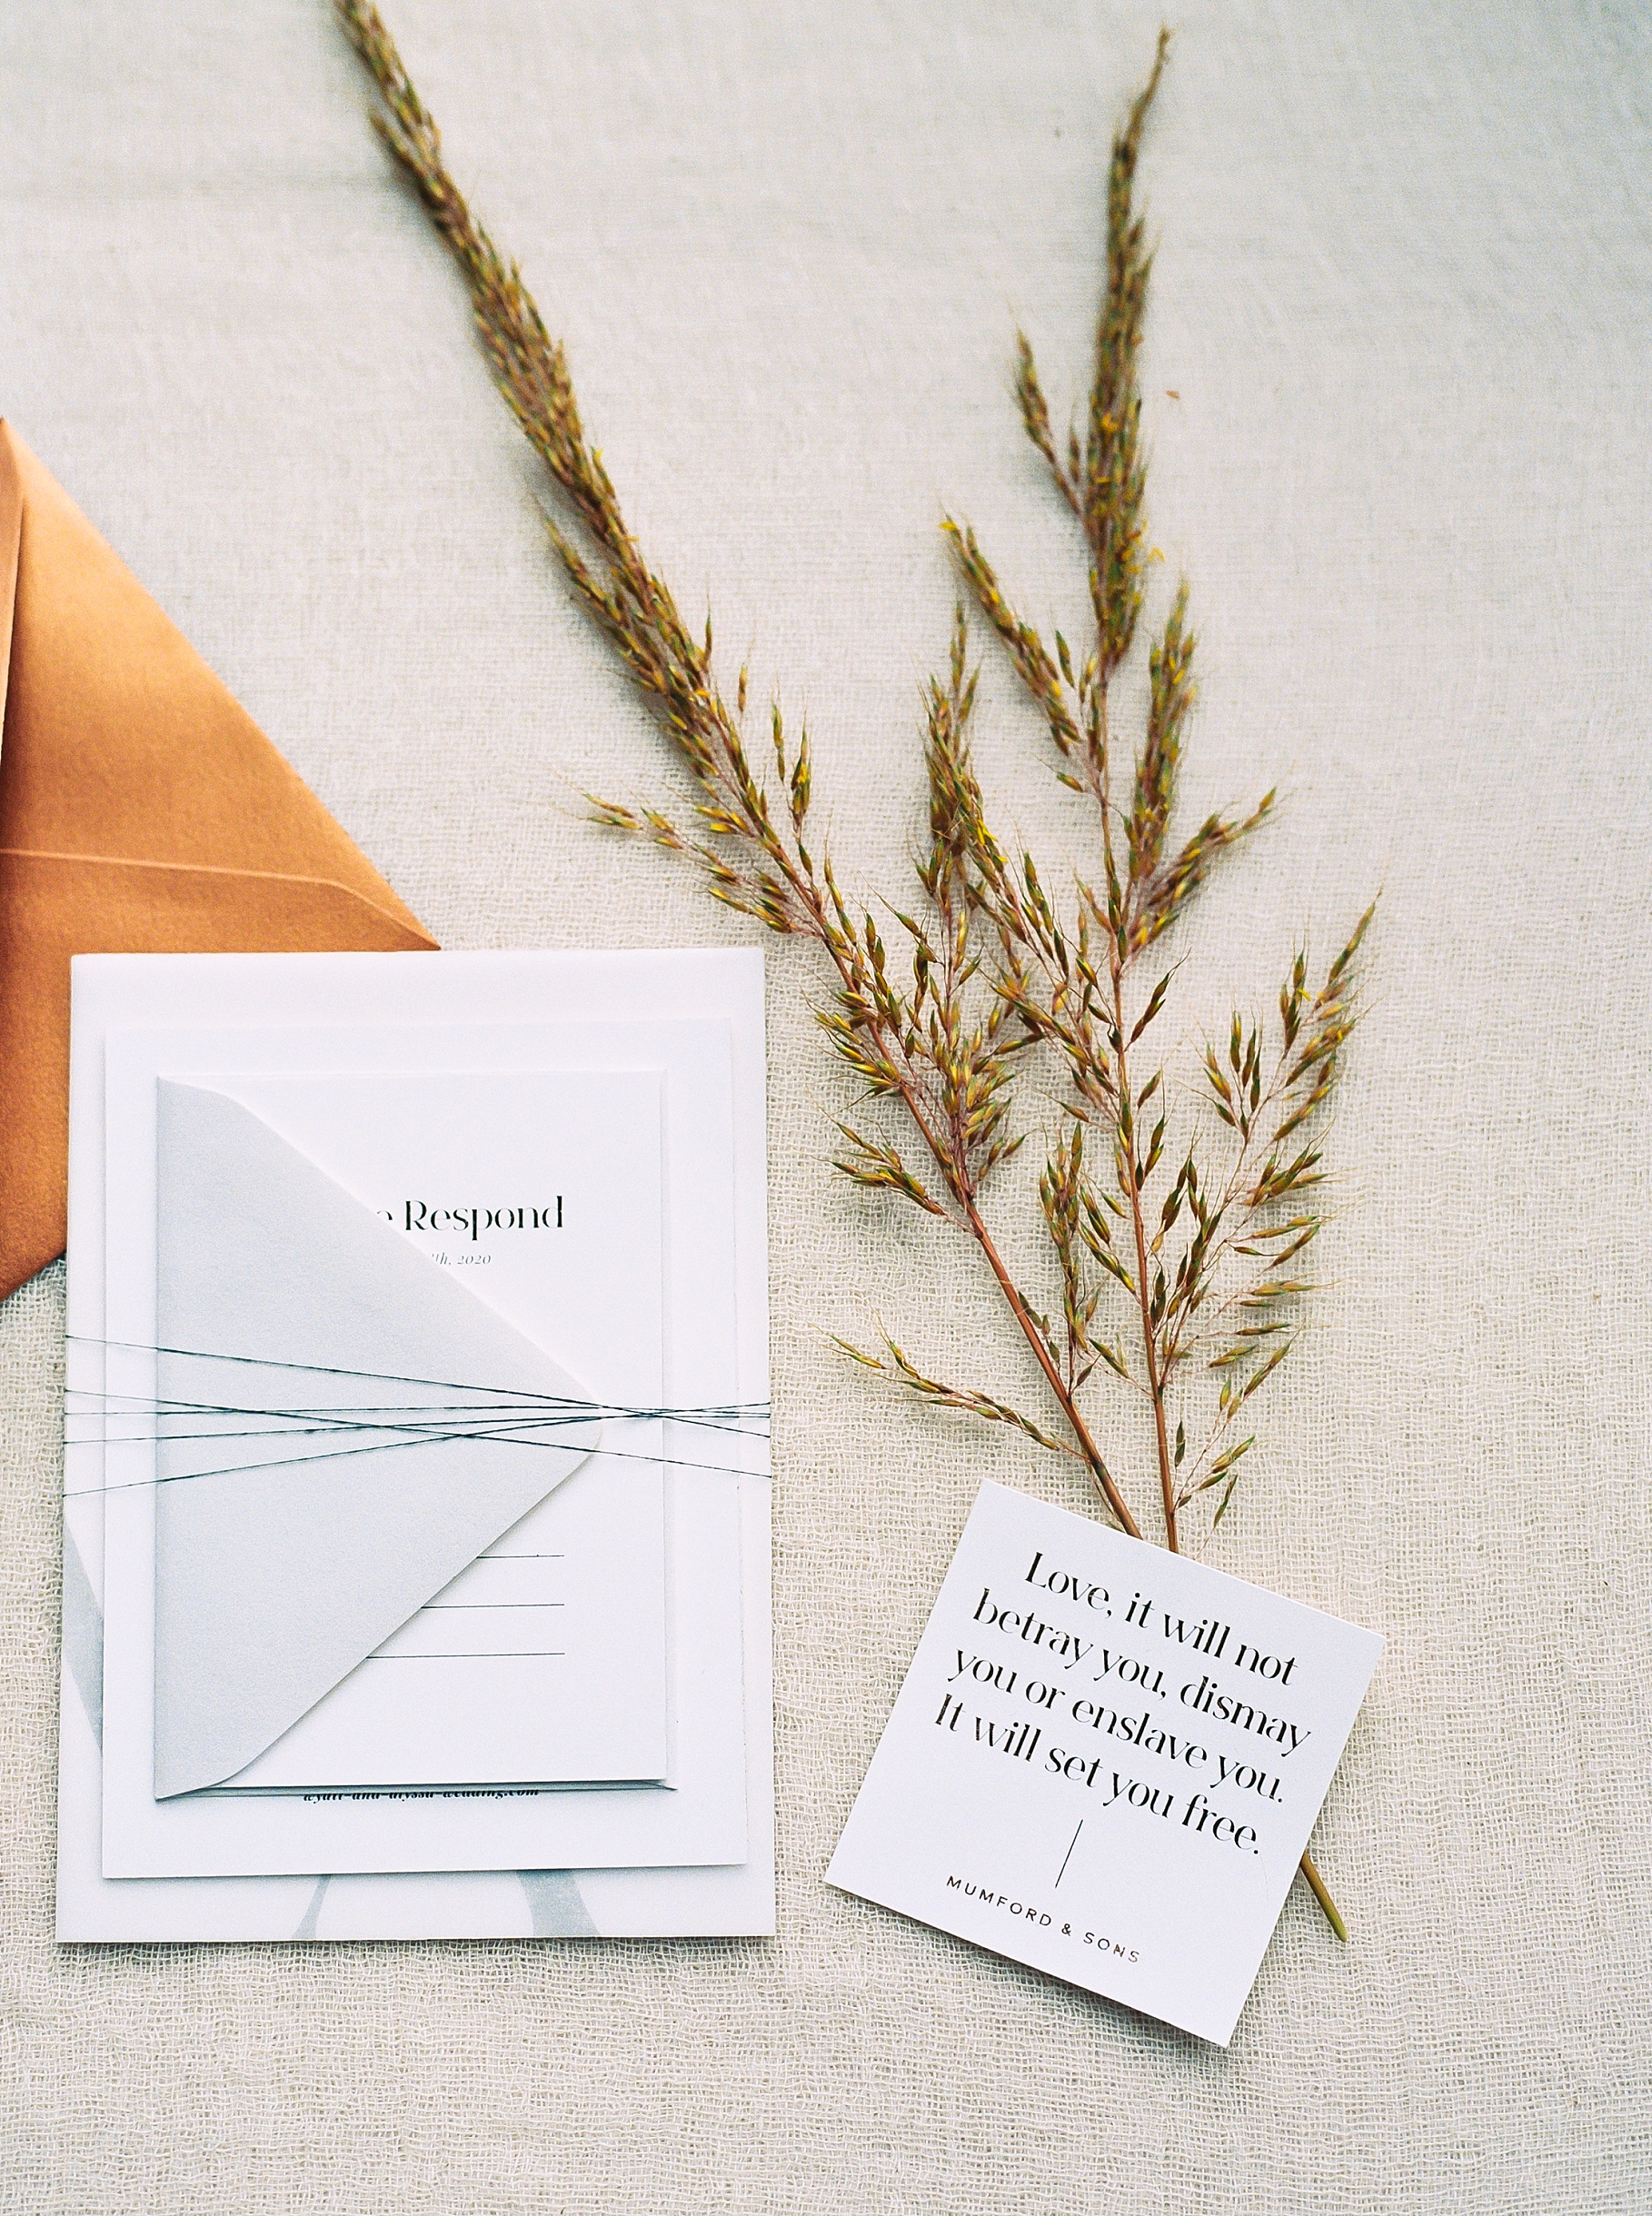 Urban Romance Wedding with Copper Accents at The Millbottom by Kelsi Kliethermes Photography Best Columbia Missouri Wedding Photographer_0041.jpg